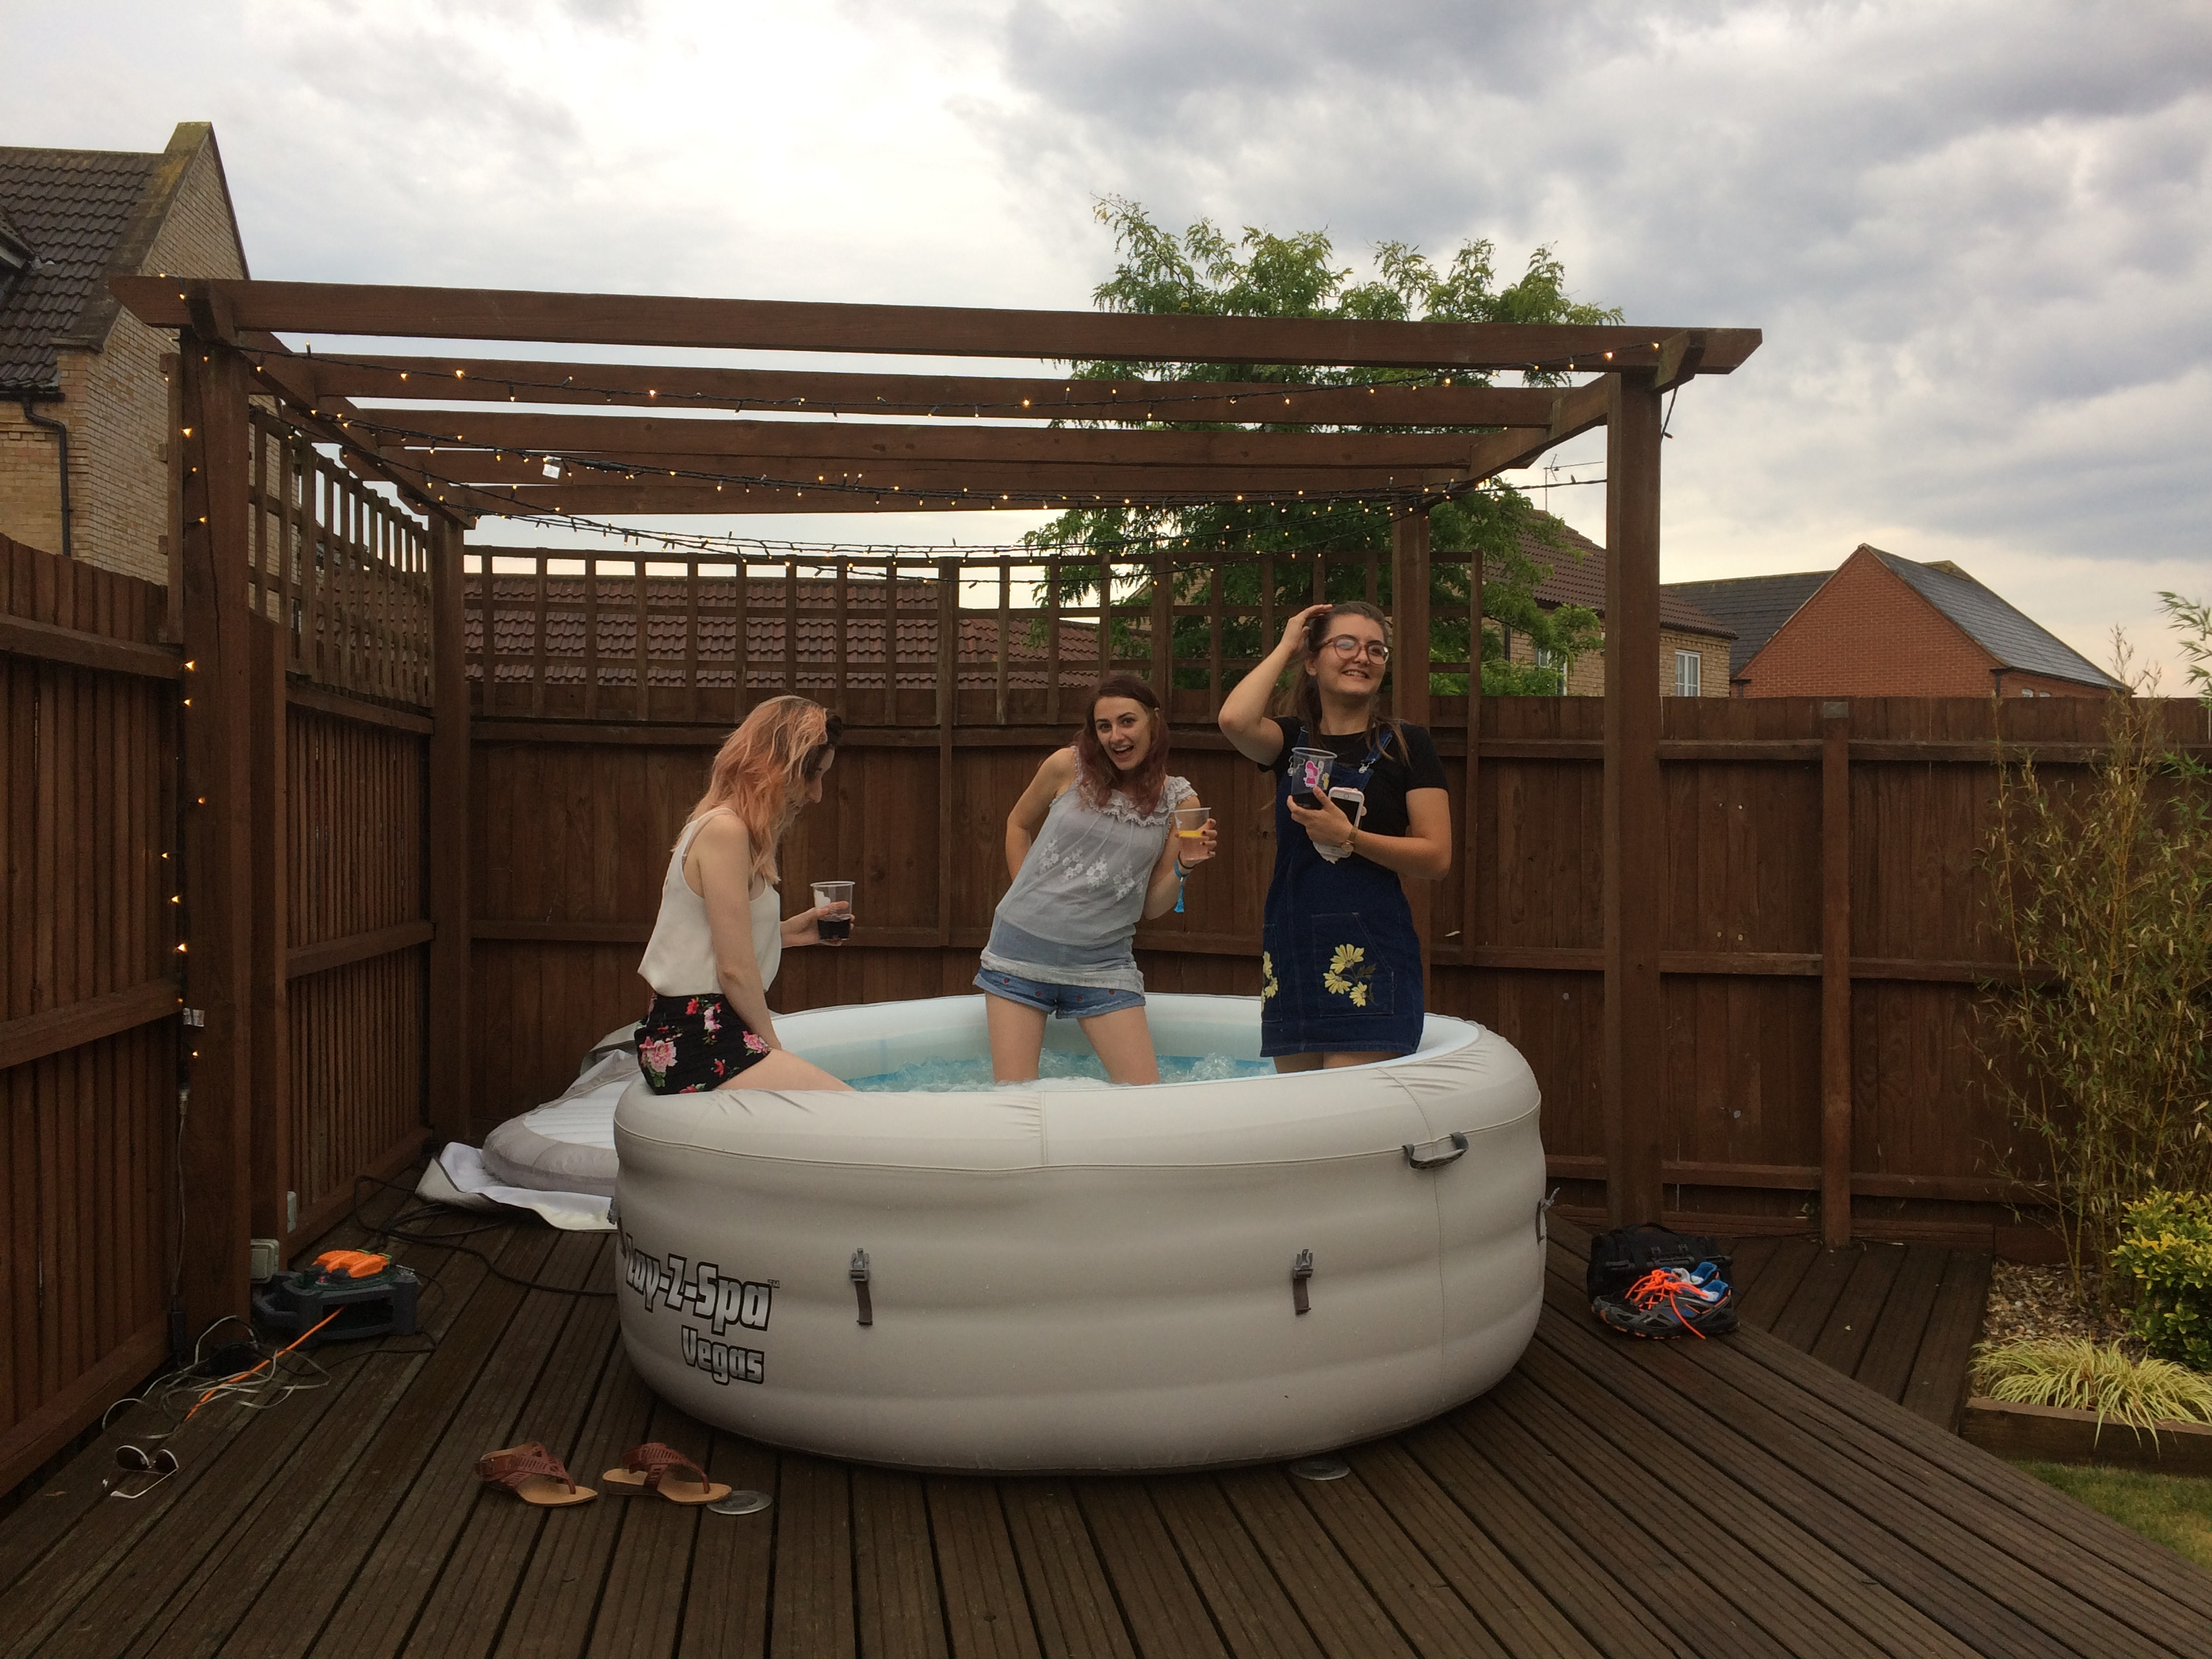 Alice, Lauren and Berni perched at the edge of the hot tub with their legs in the water, under a grey sky